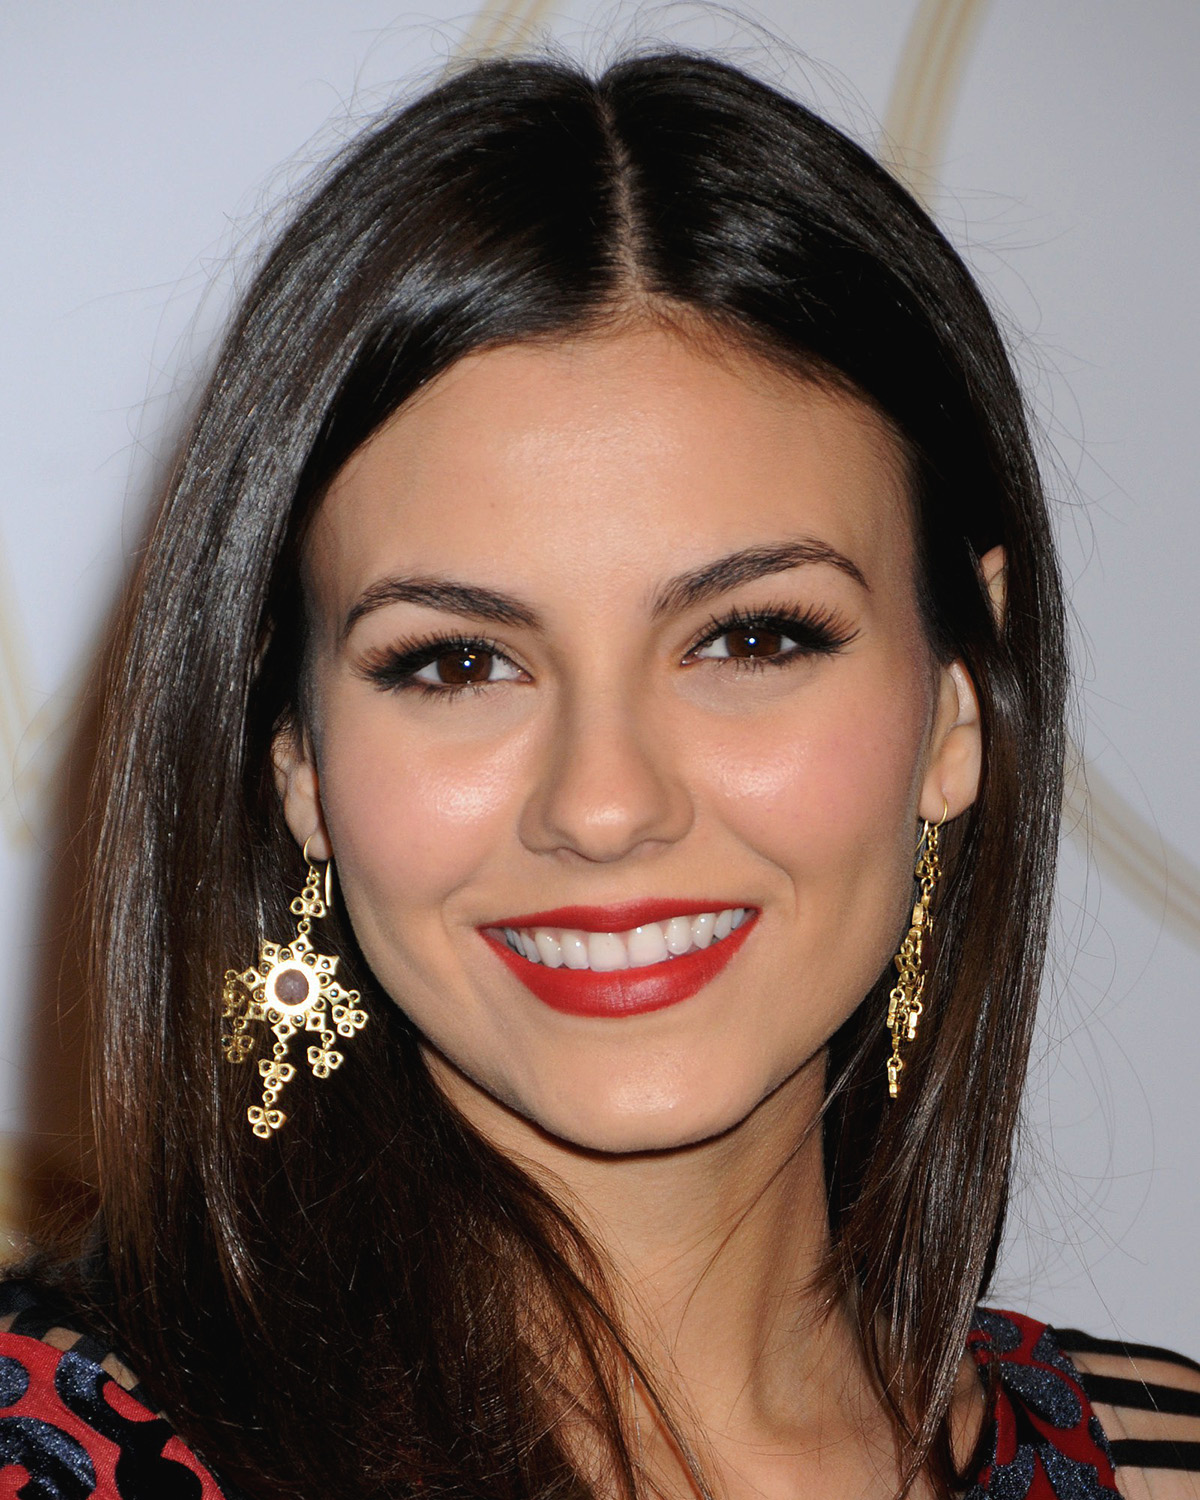 My Cum Your Lips: Lips # 37 - Victoria Justice - April 2013